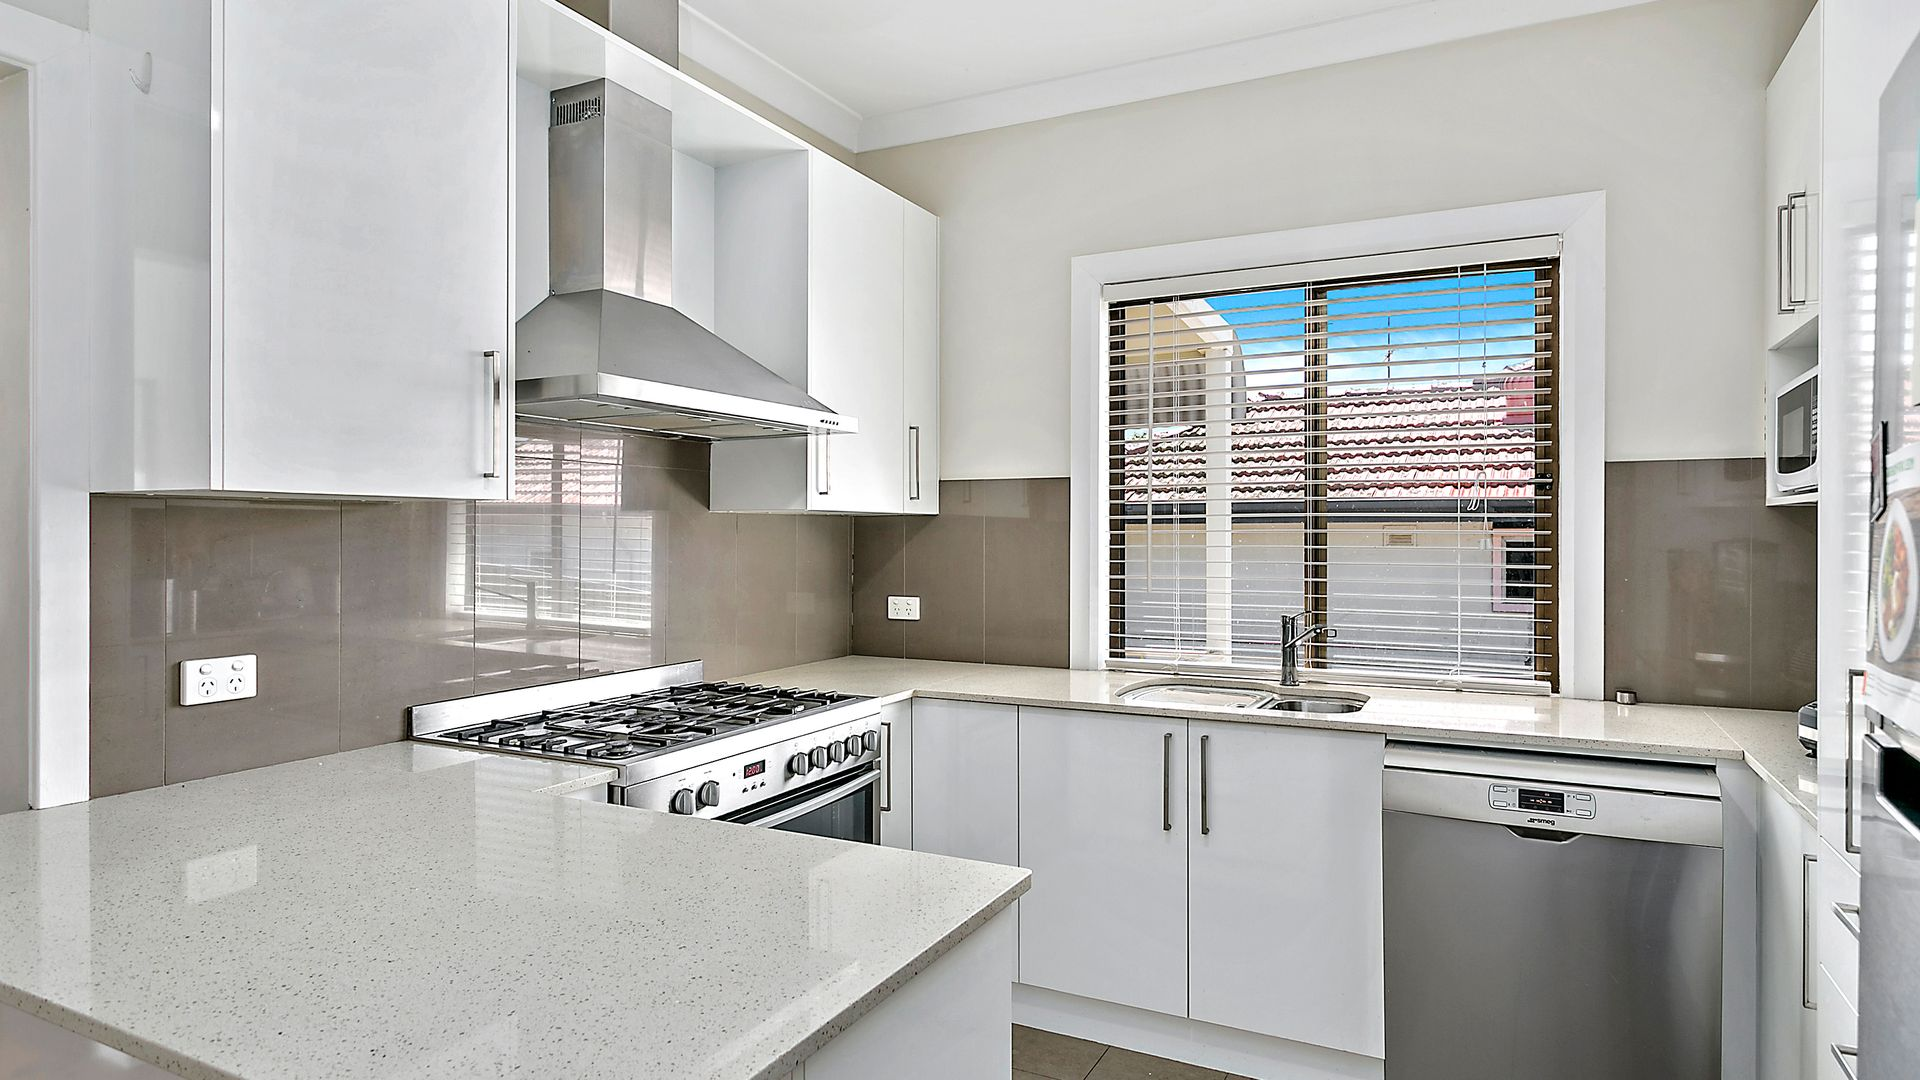 1/11 Dempster Street, West Wollongong NSW 2500, Image 2